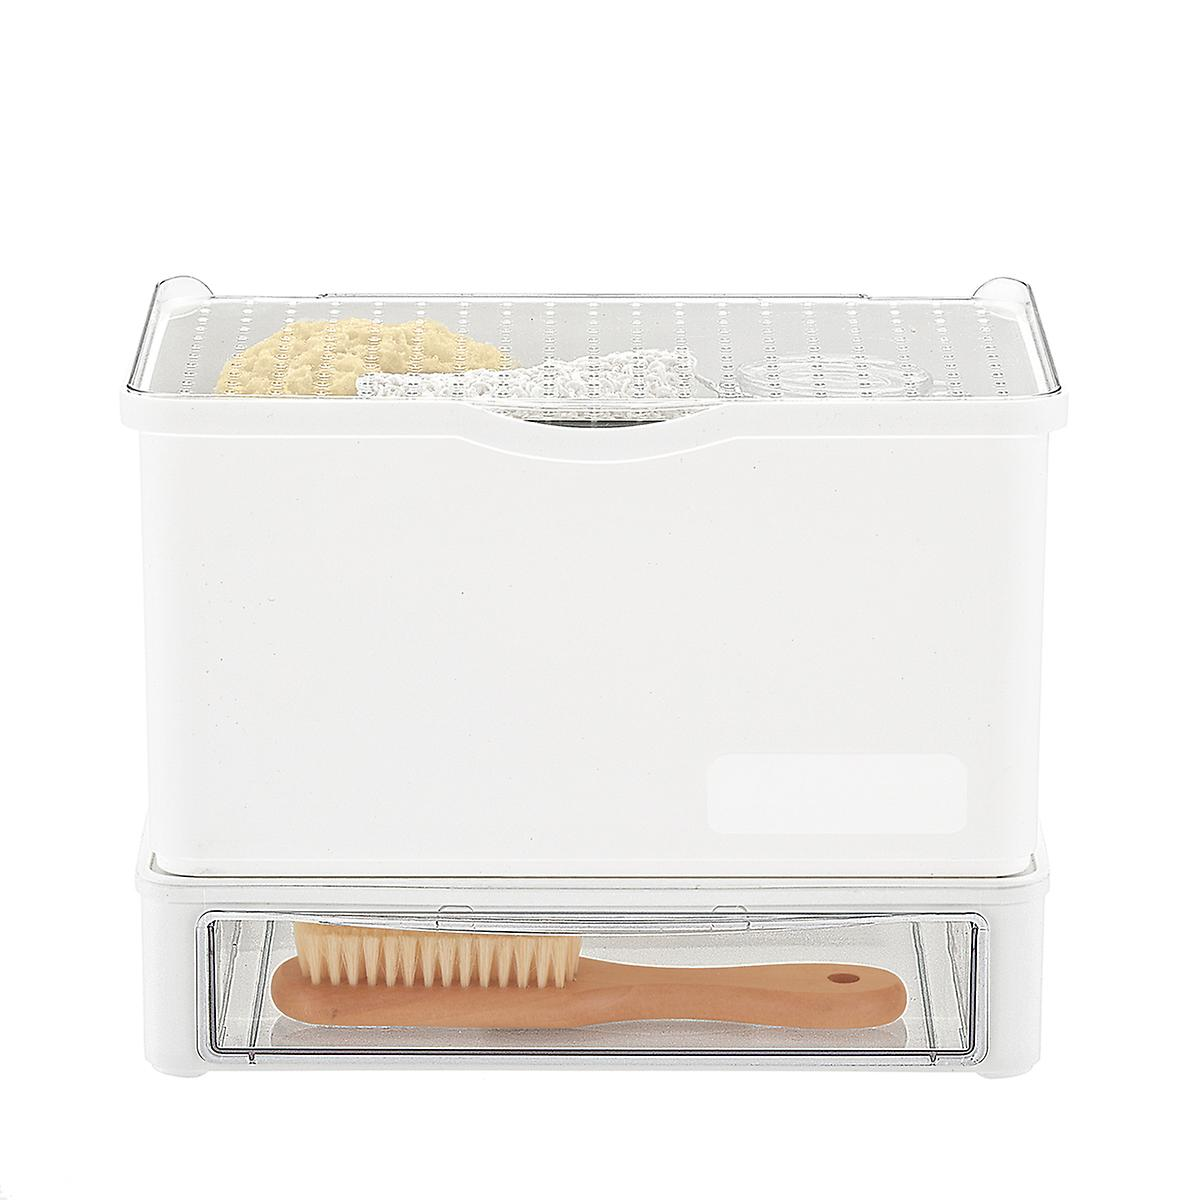 madesmart 1-Drawer Stacking Bin Starter Kit